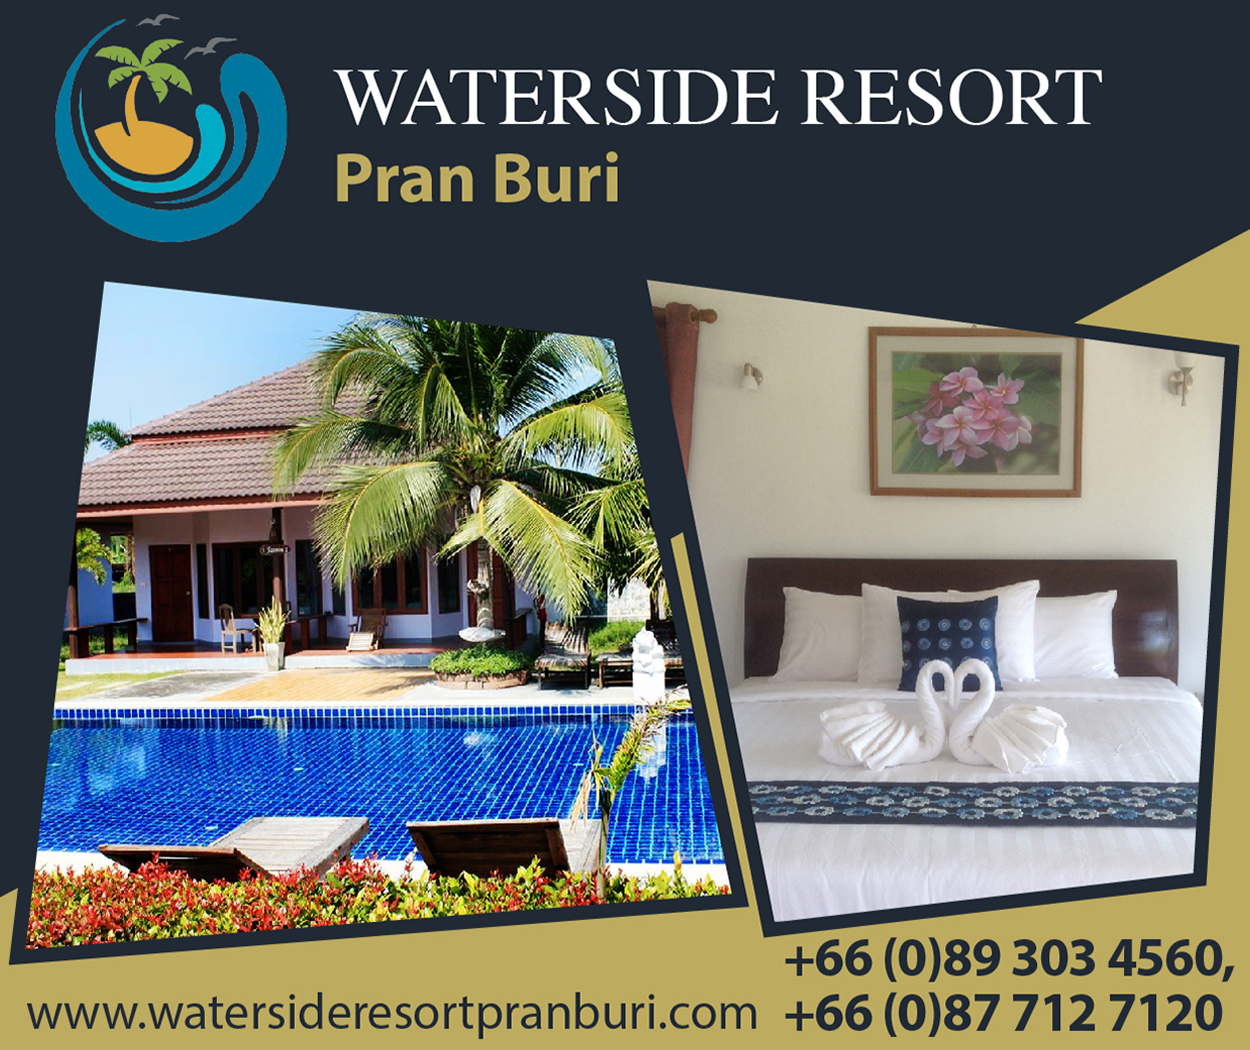 Waterside Resort Pran Buri